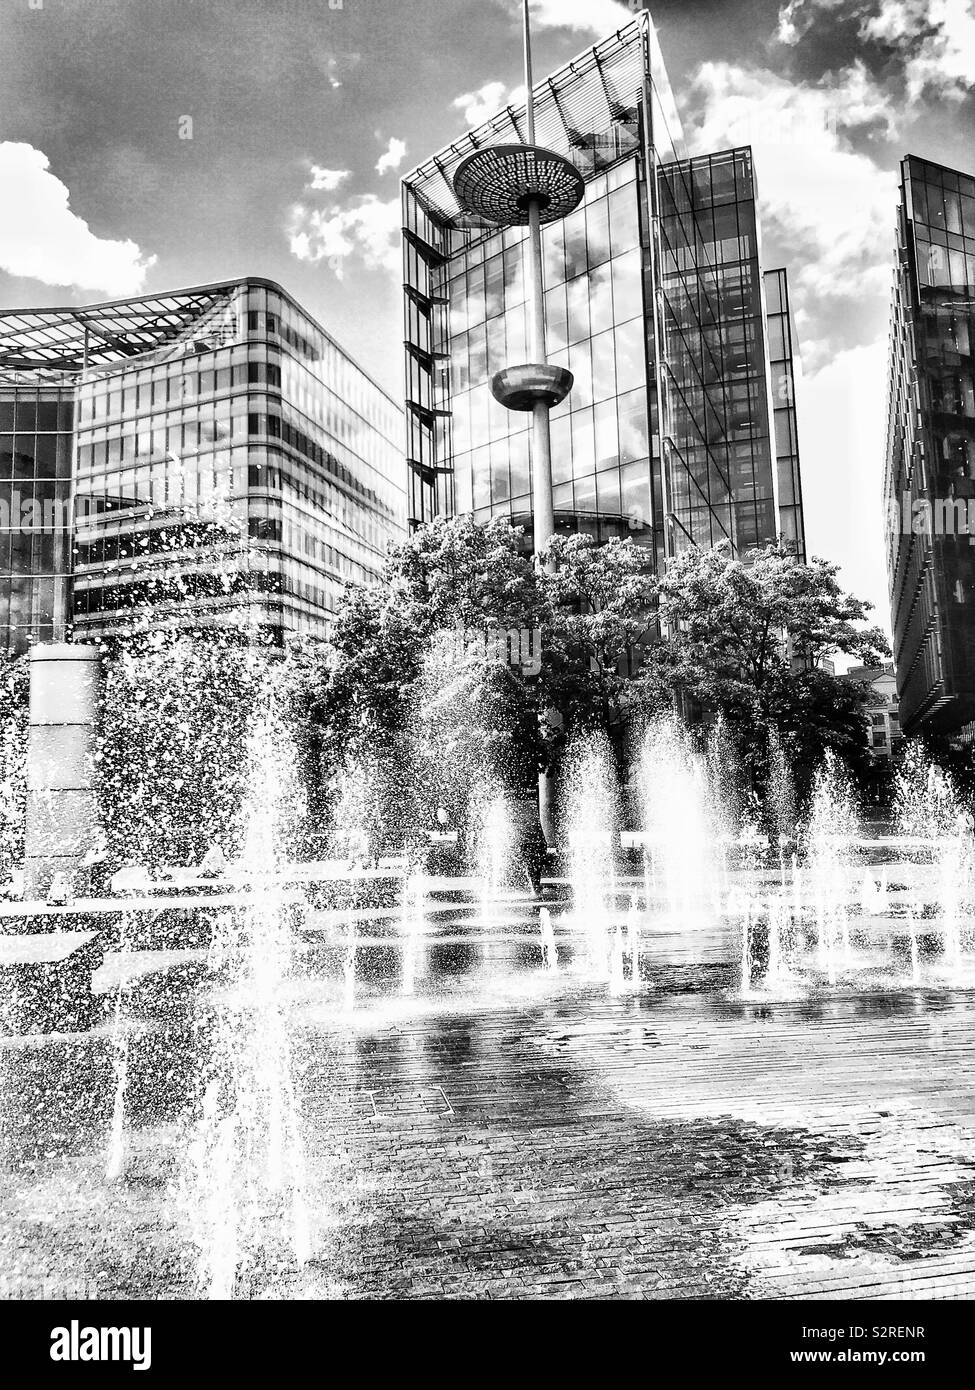 the-modern-urban-landscape-glass-steel-fountains-and-modern-sculpture-near-city-hall-london-england-S2RENR Top Top Landscape Photography Near London This Year @capturingmomentsphotography.net